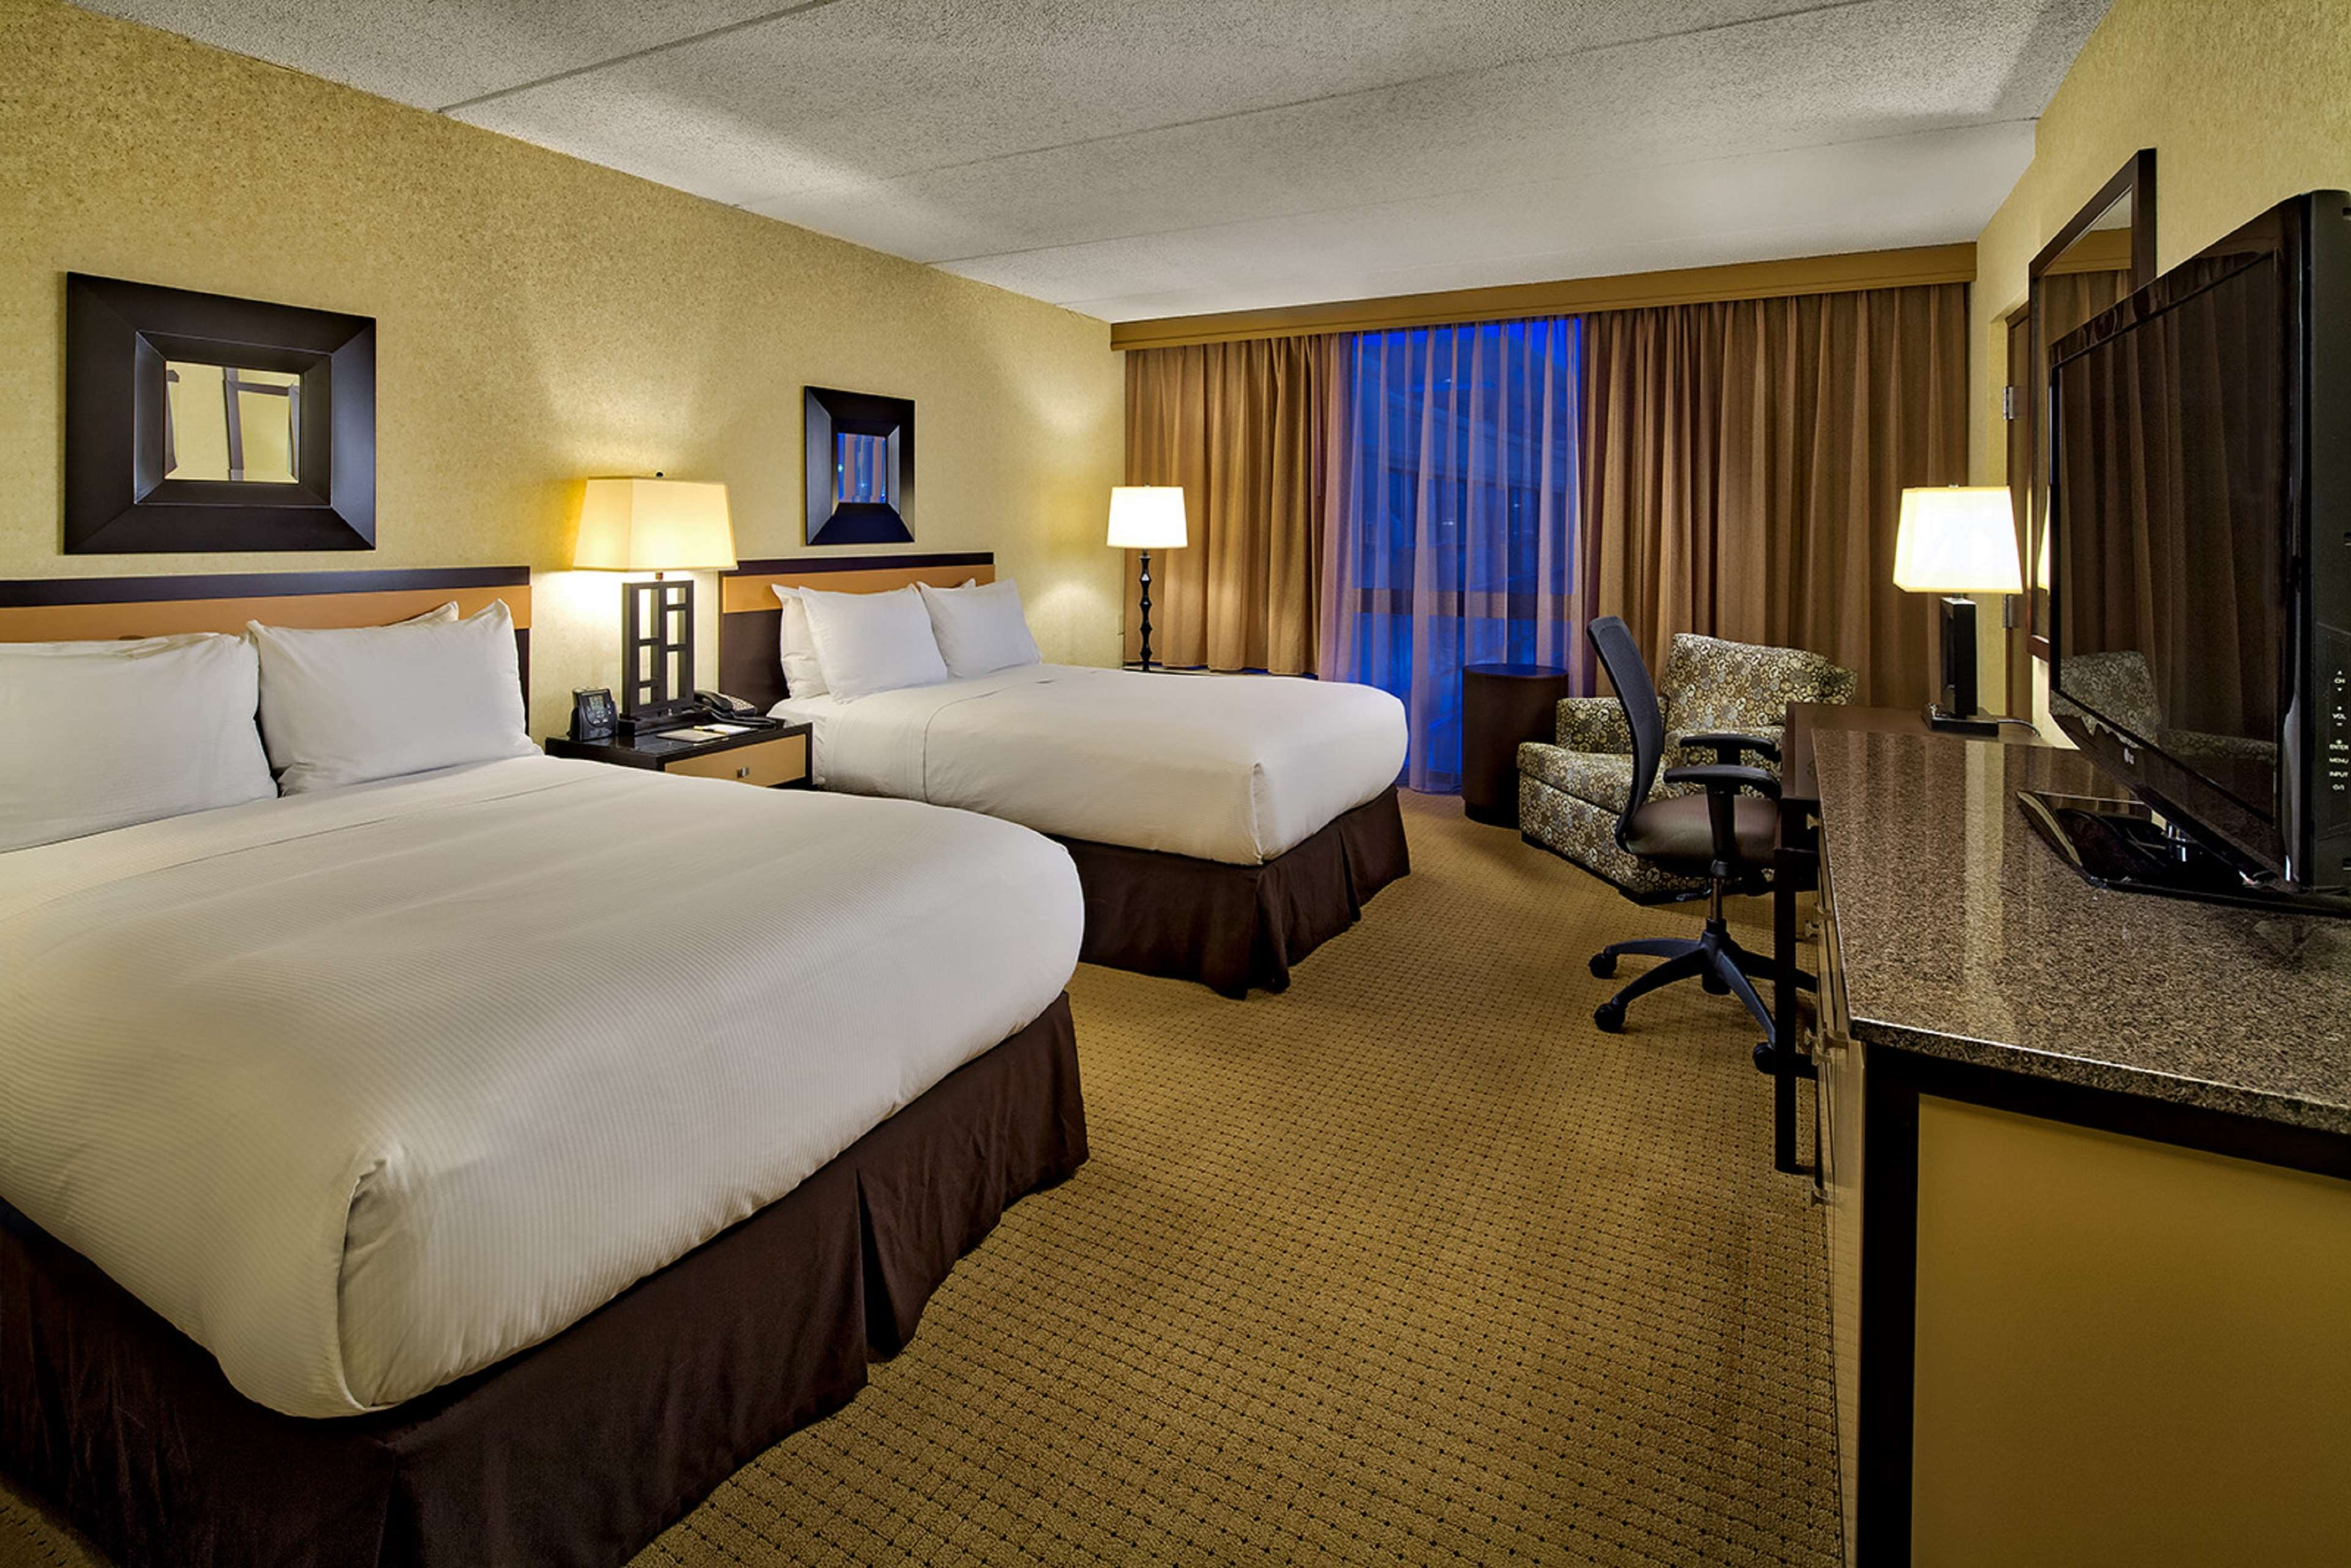 DoubleTree by Hilton Hotel Chicago - Arlington Heights image 3